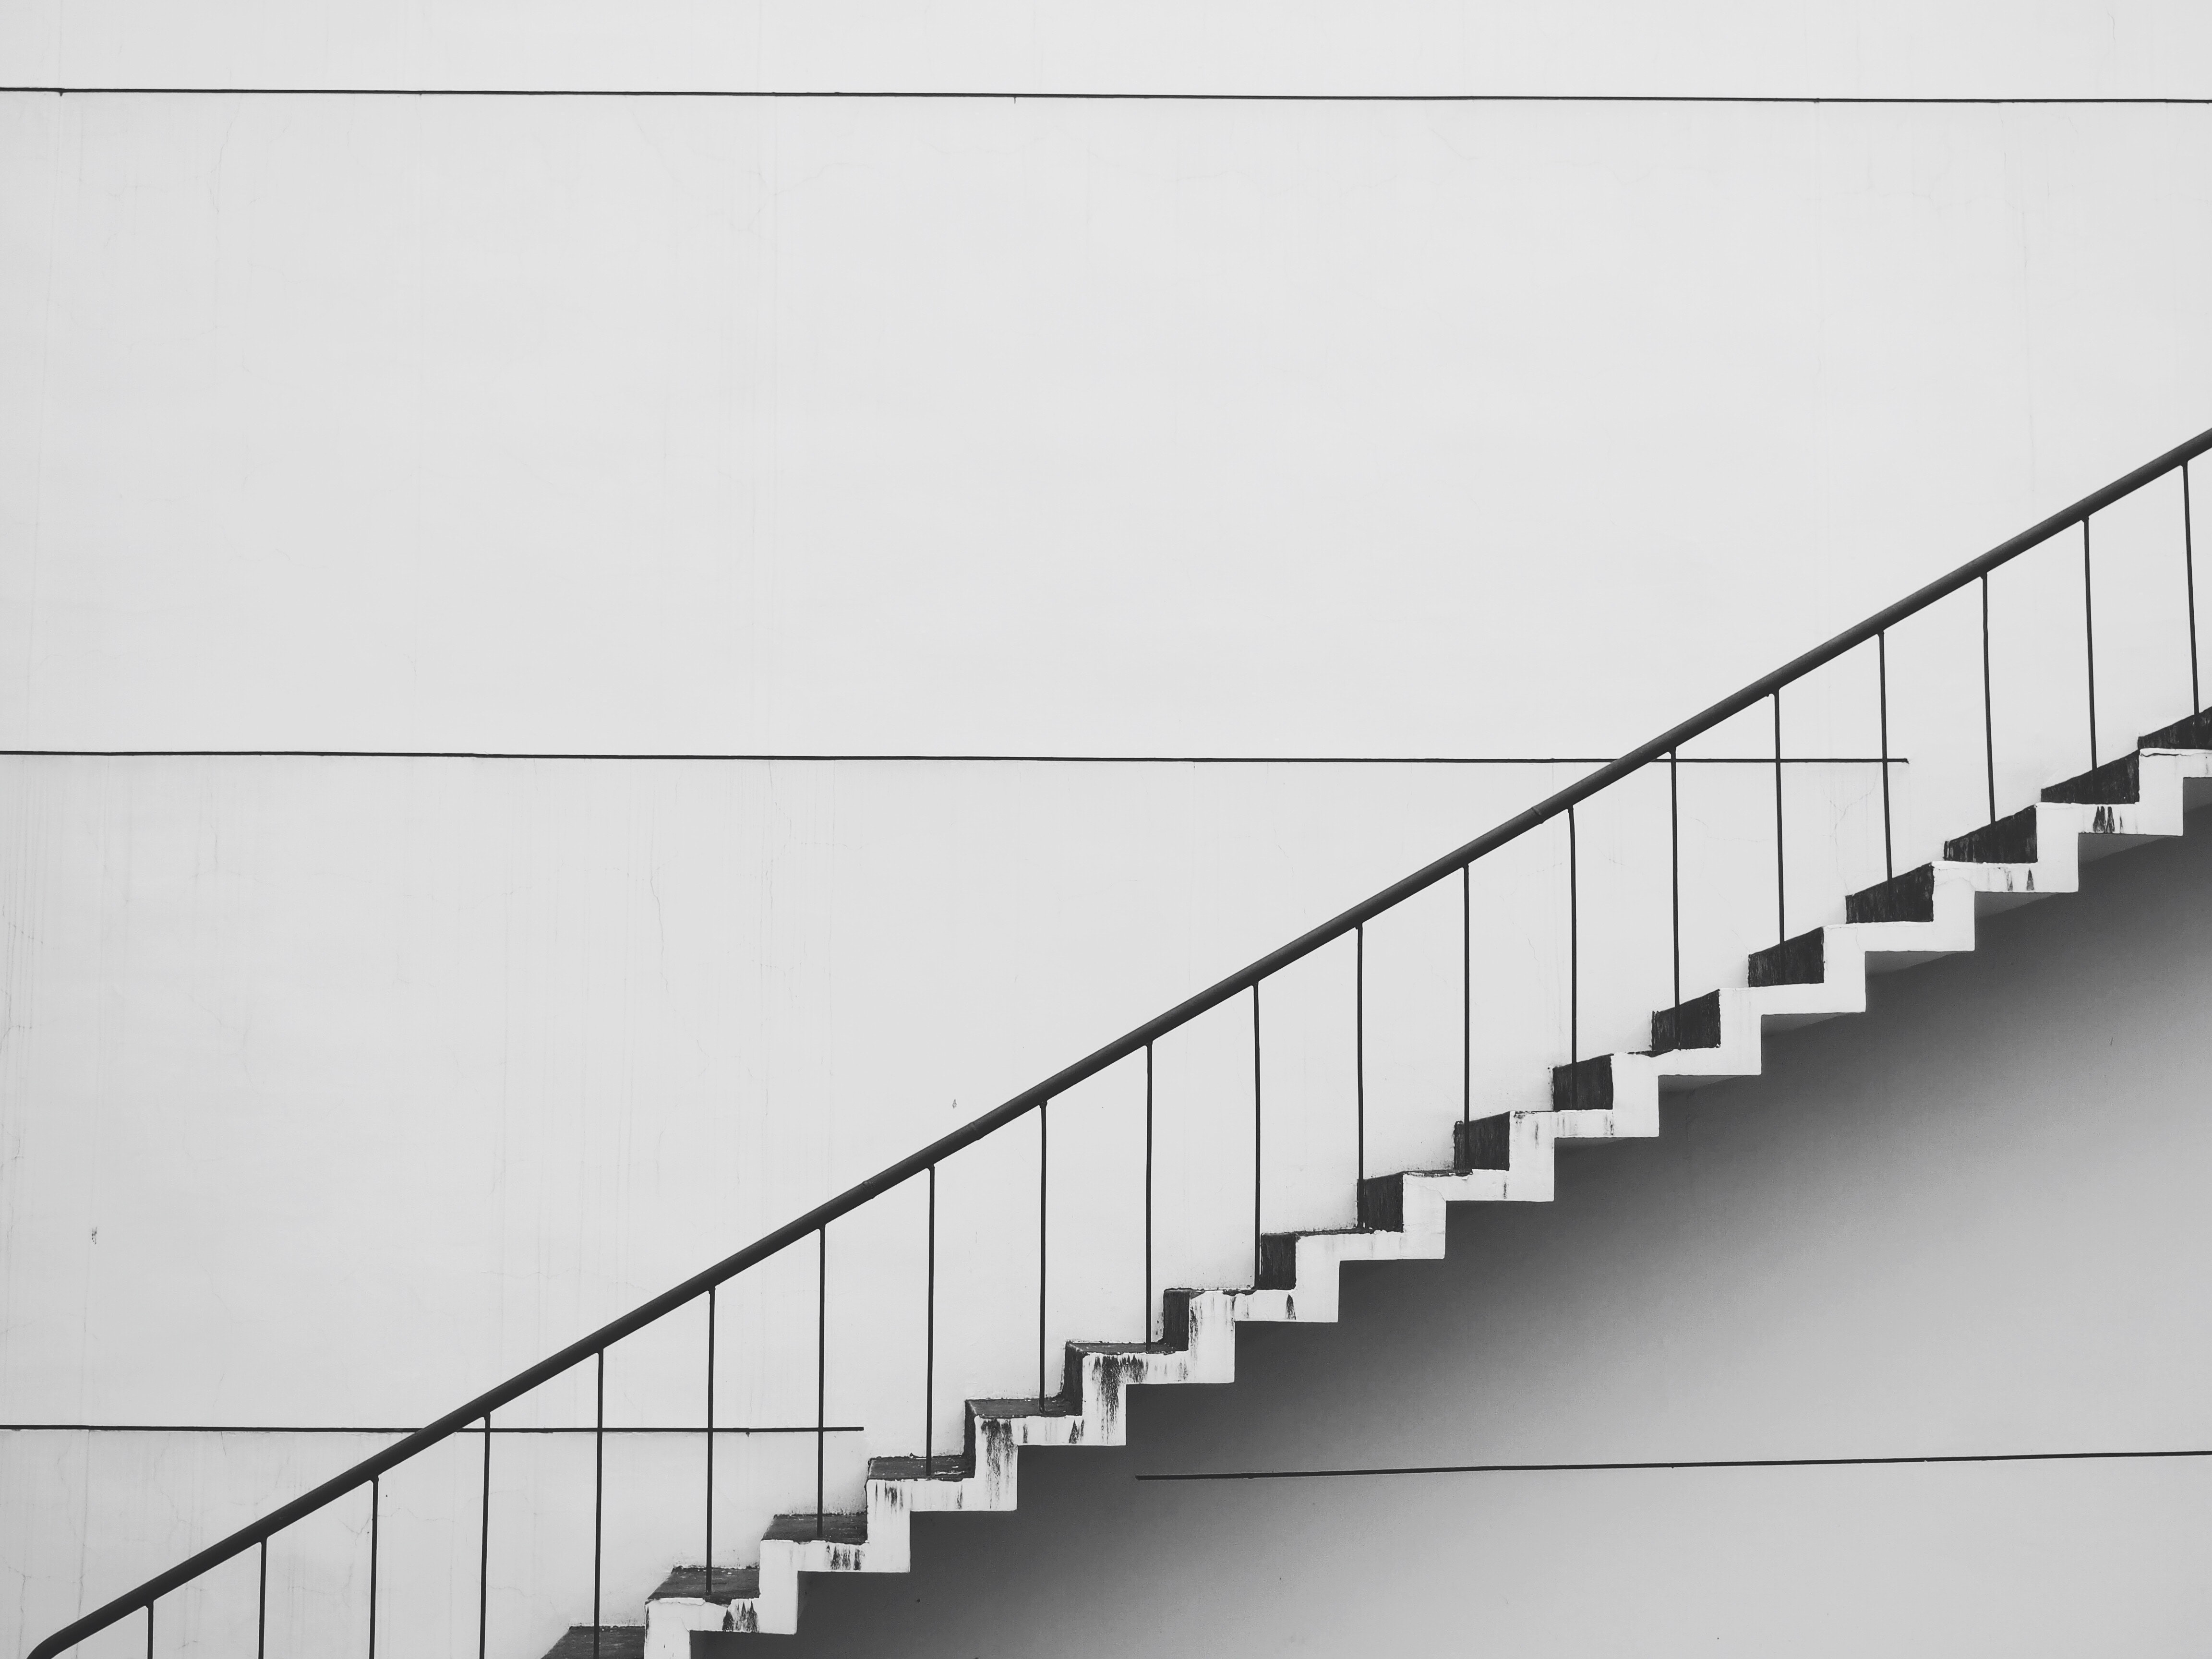 Photograph of a white, sleek staircase